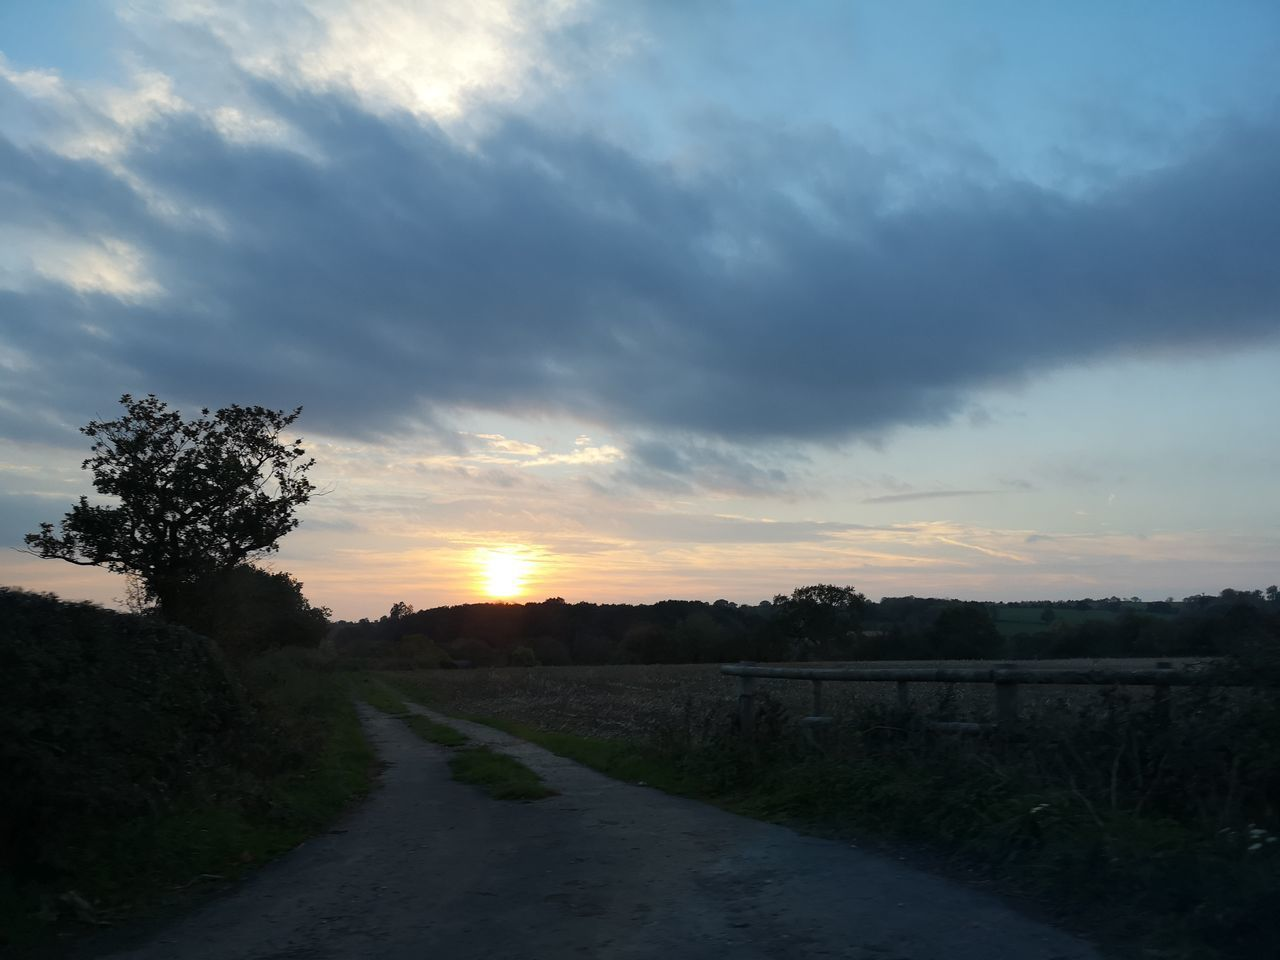 ROAD BY FIELD AGAINST SKY AT SUNSET